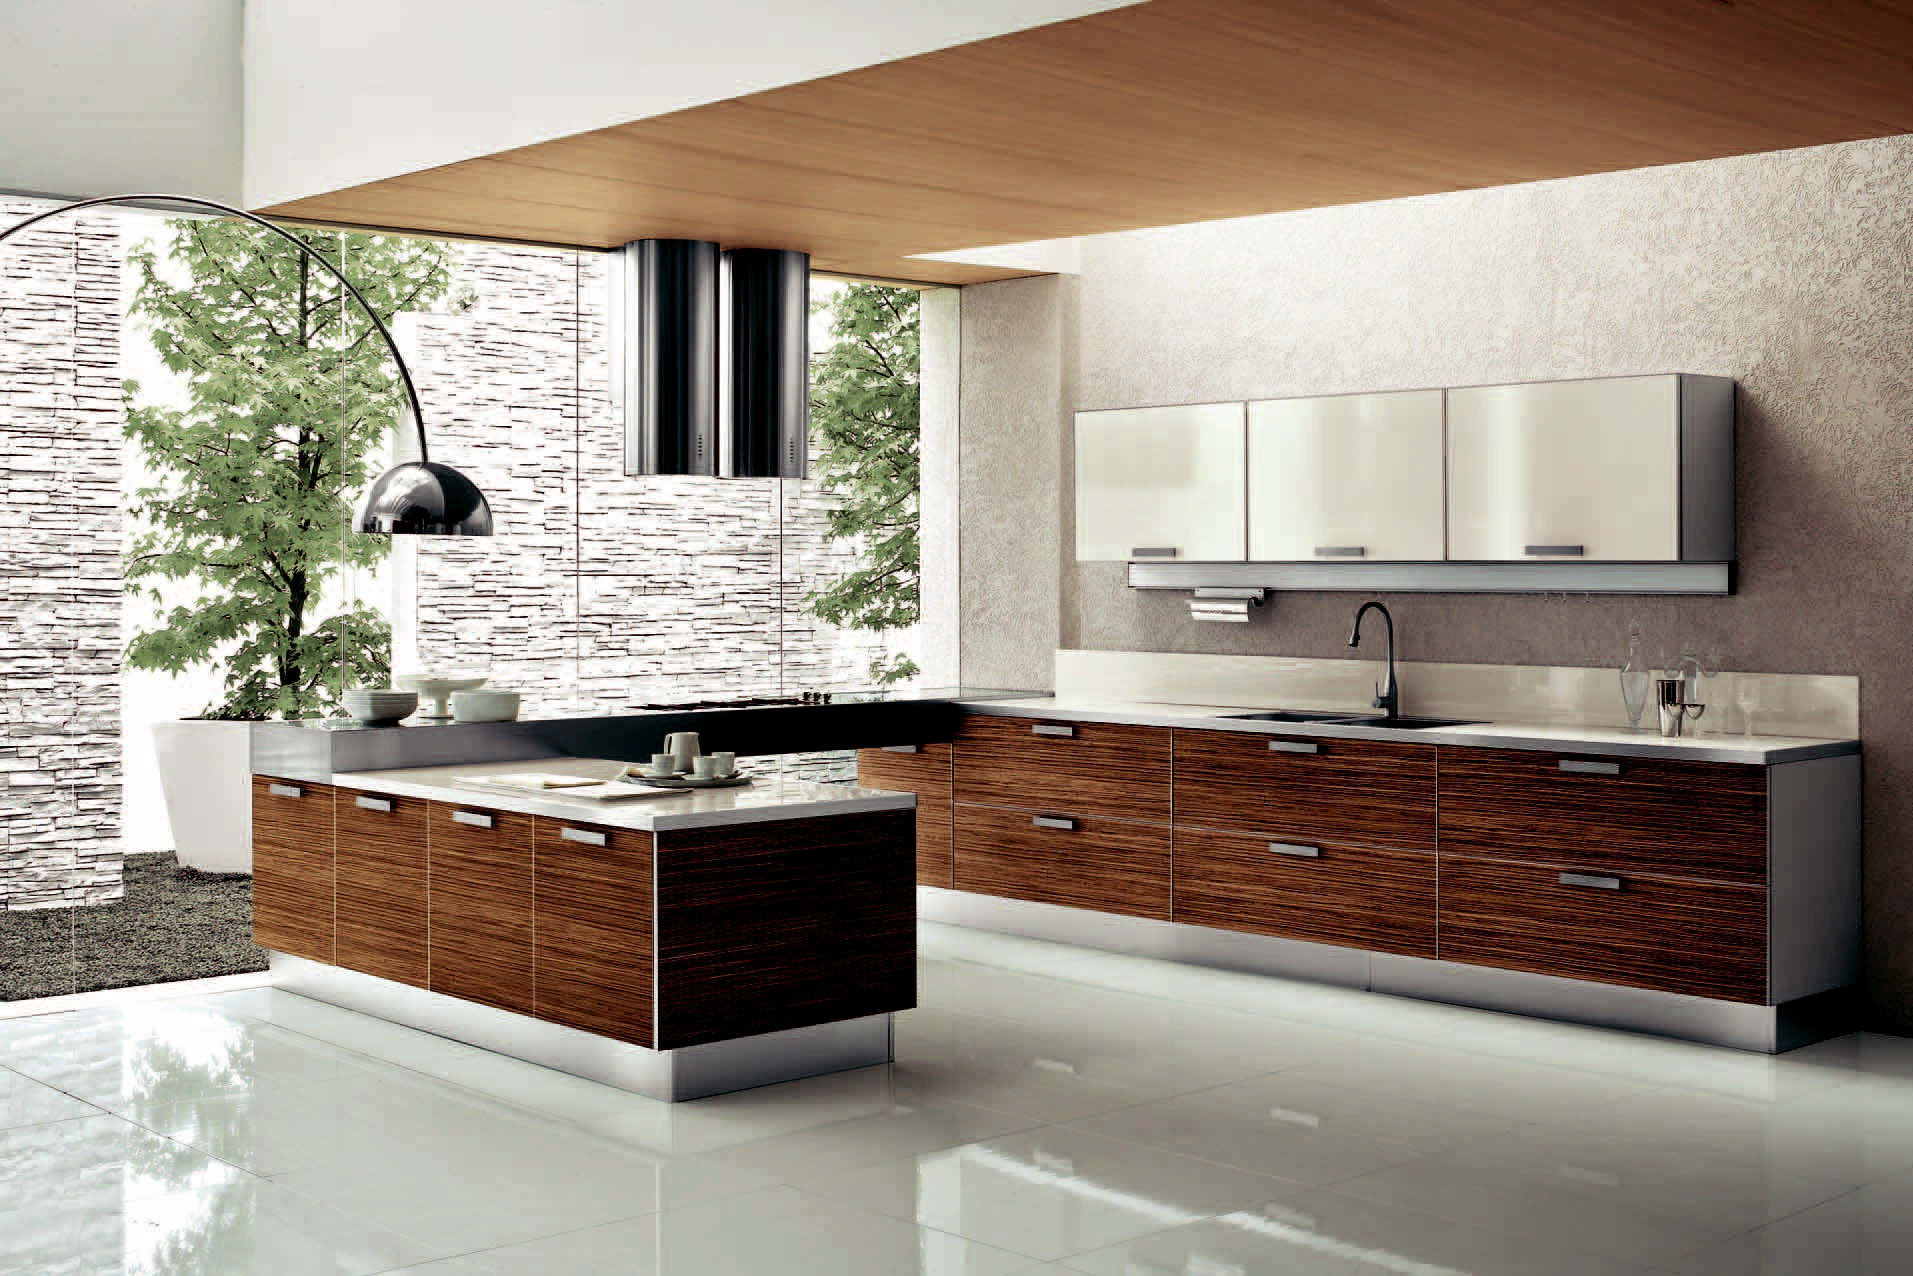 Beyond kitchens kitchen cupboards cape town kitchens Kitchen interior design